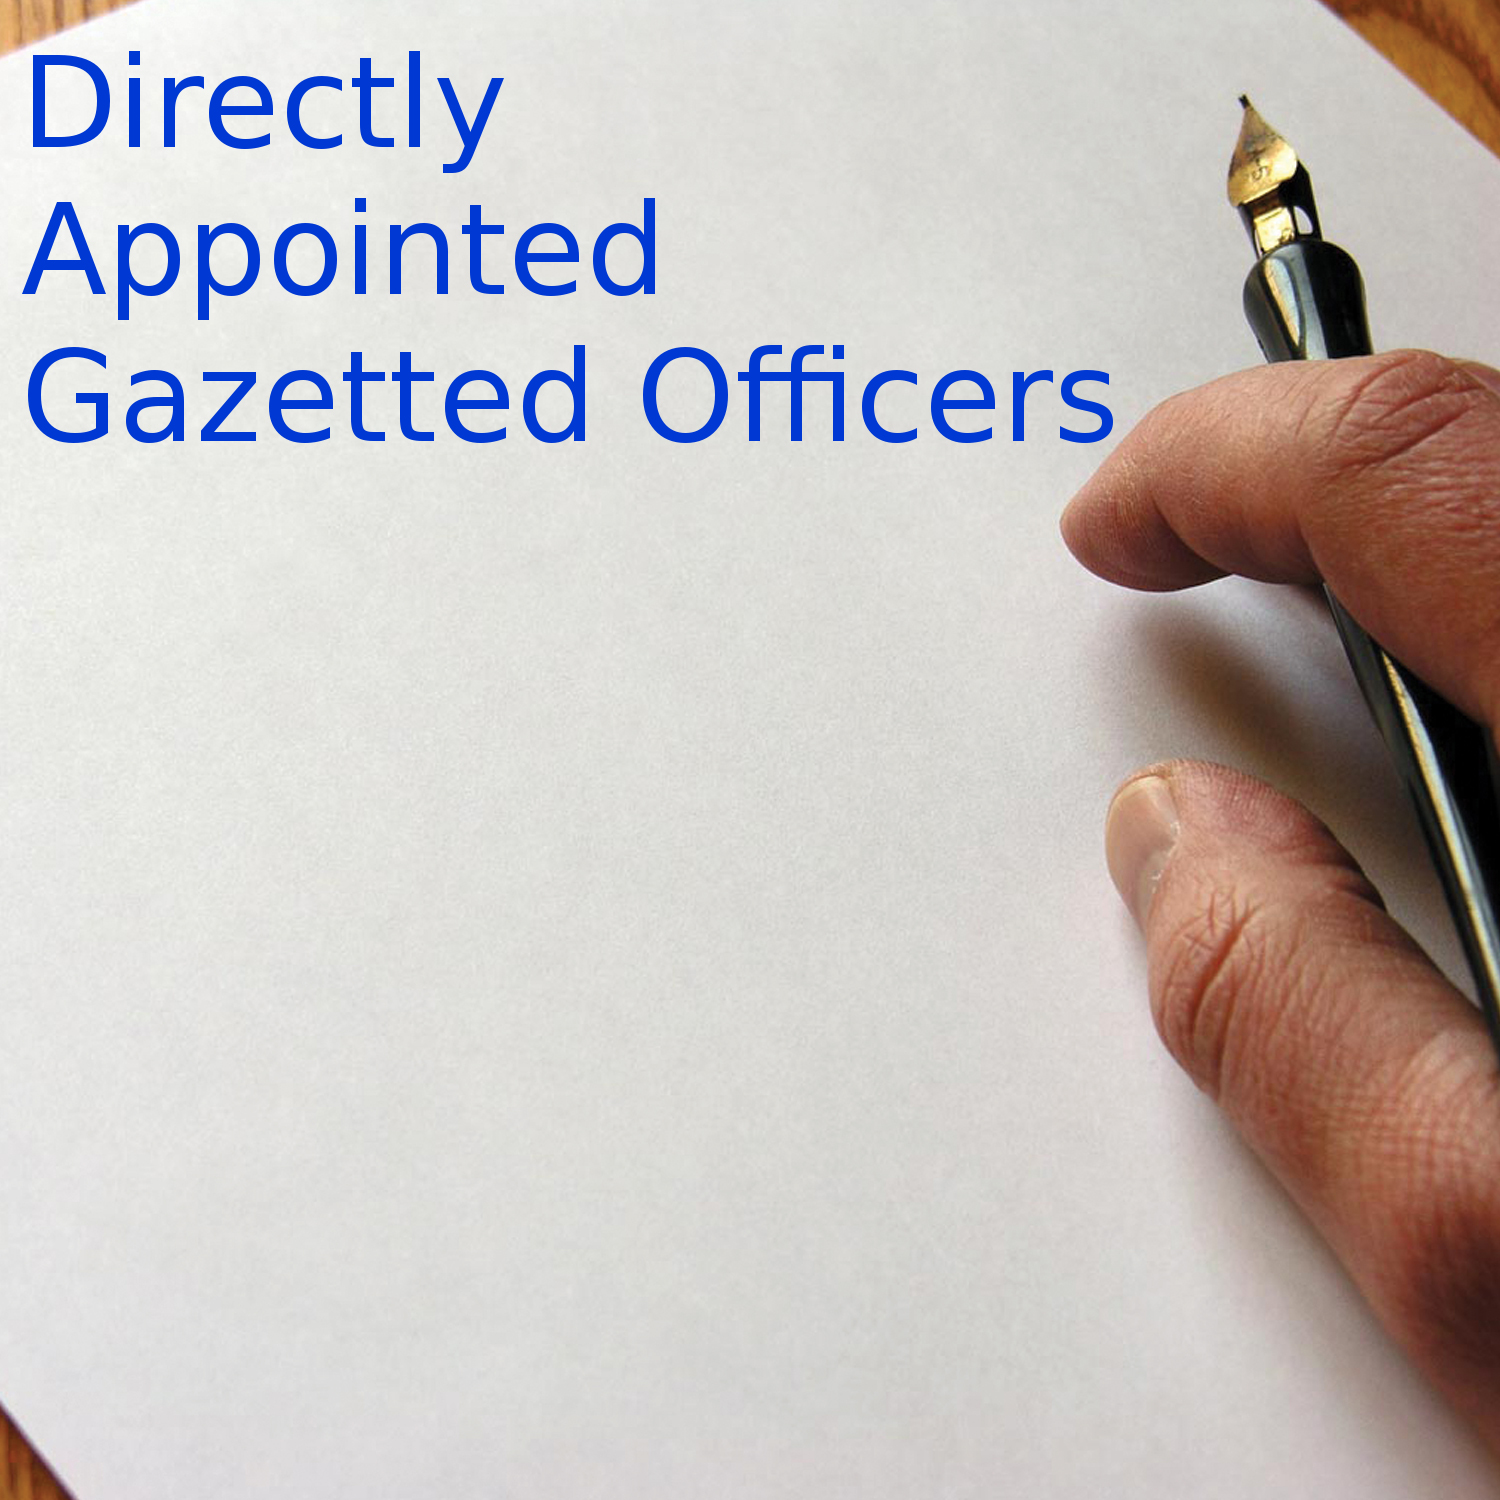 Directly Appointed Gazetted Officers